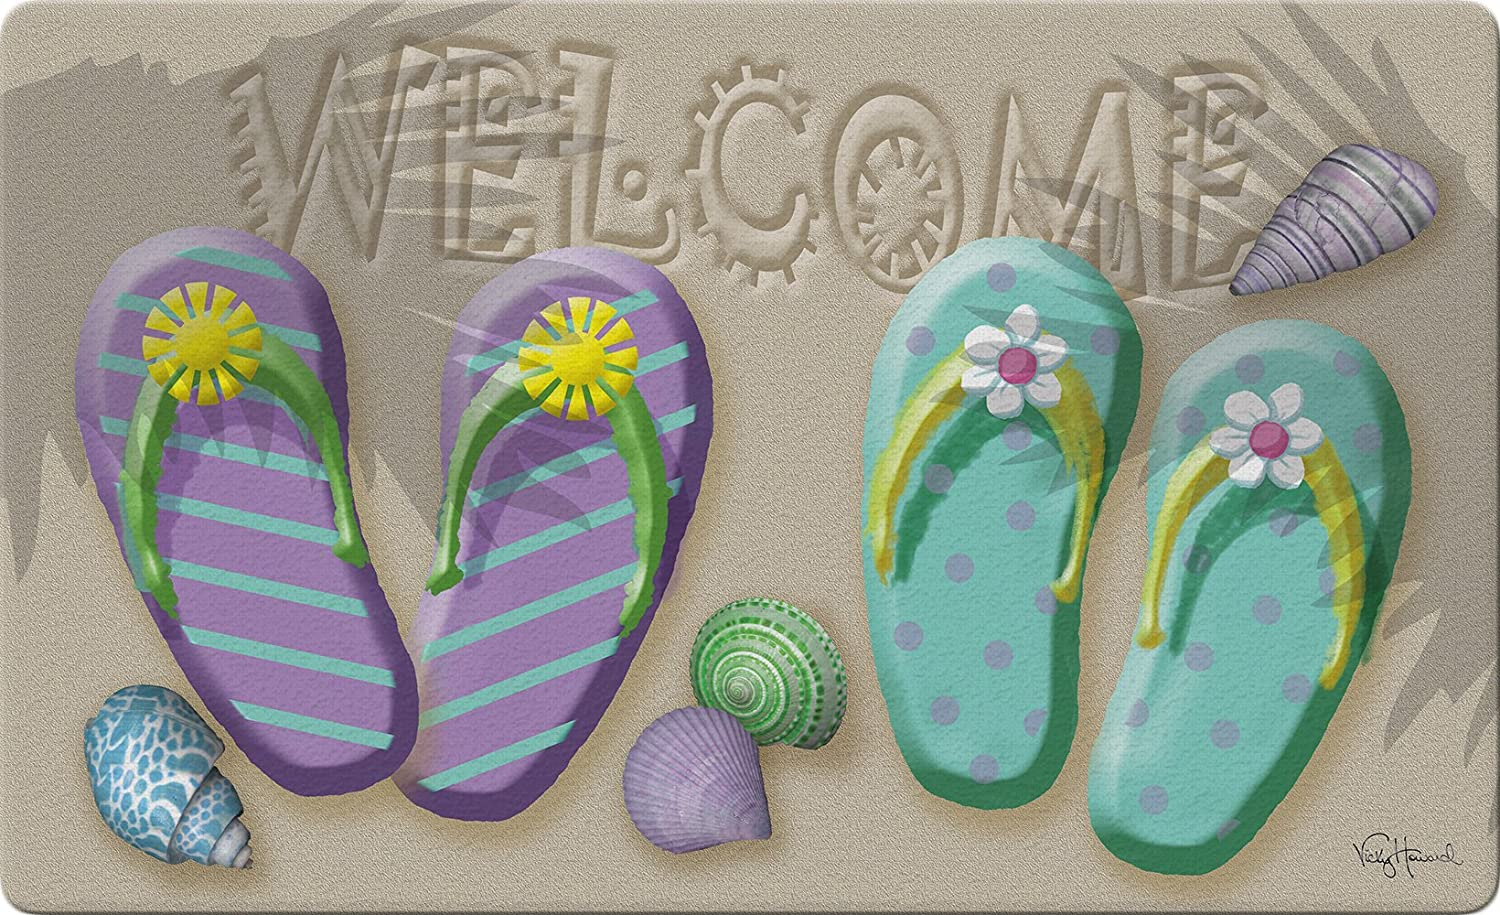 Toland Home Garden Welcome Flip Flop 18 by 30 Inch Decorative Beach Seashell Floor Mat Summer Sandal Doormat